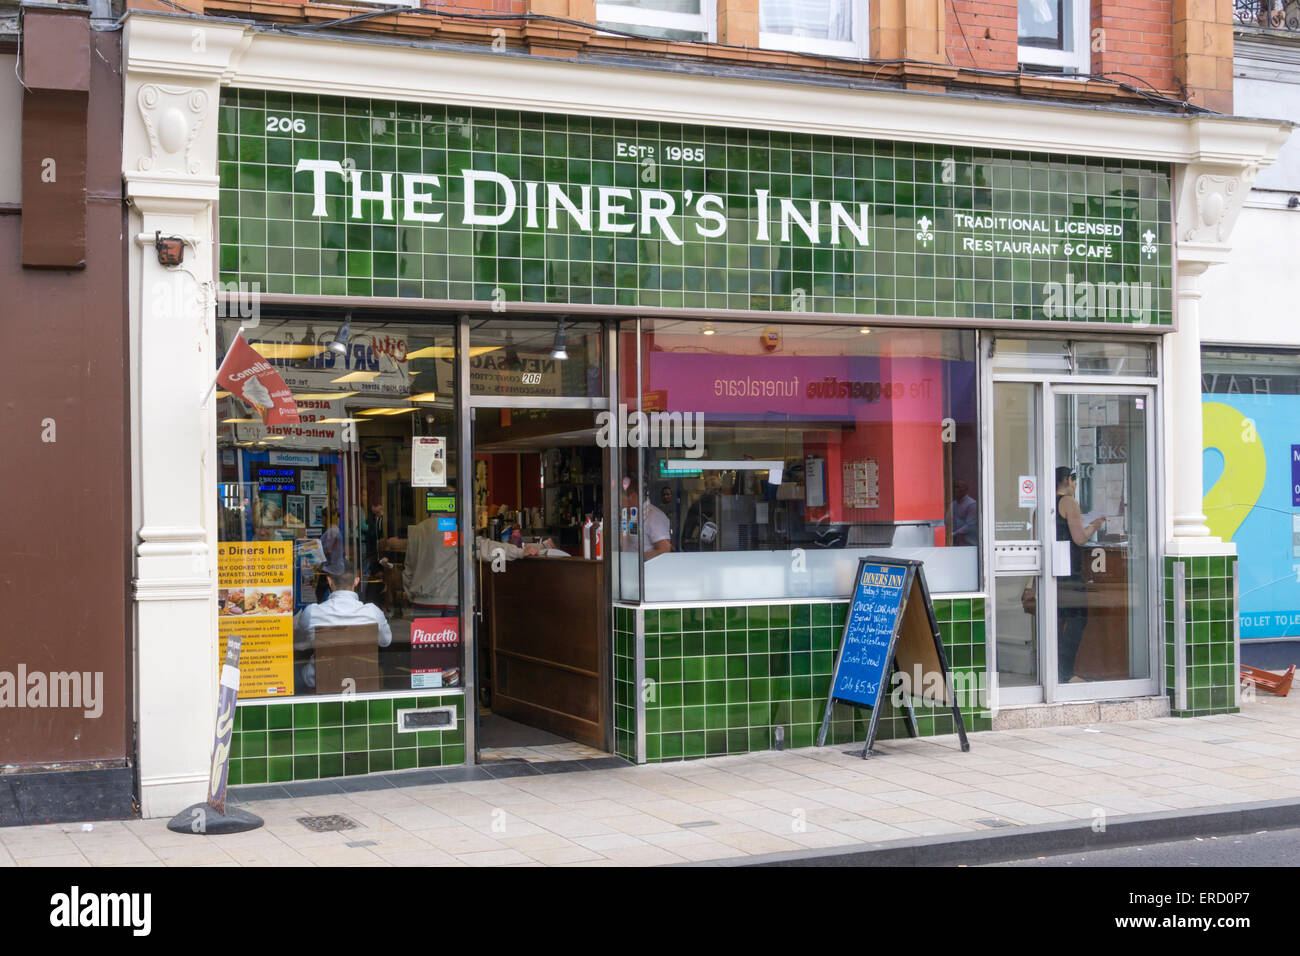 The Diner's Inn in Bromley High Street, South London. - Stock Image